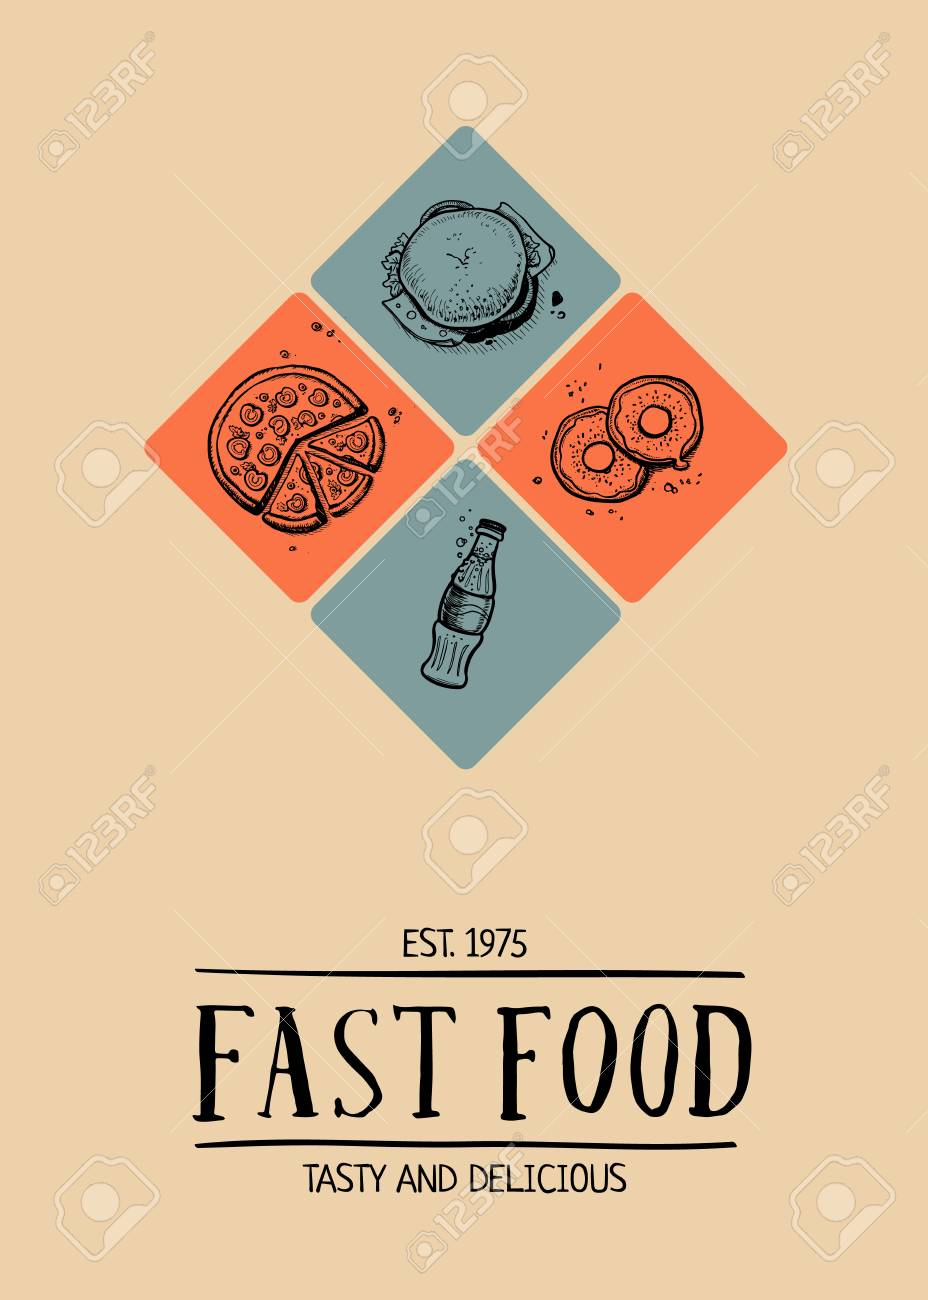 fast food cafe menu cover design royalty free cliparts, vectors, and